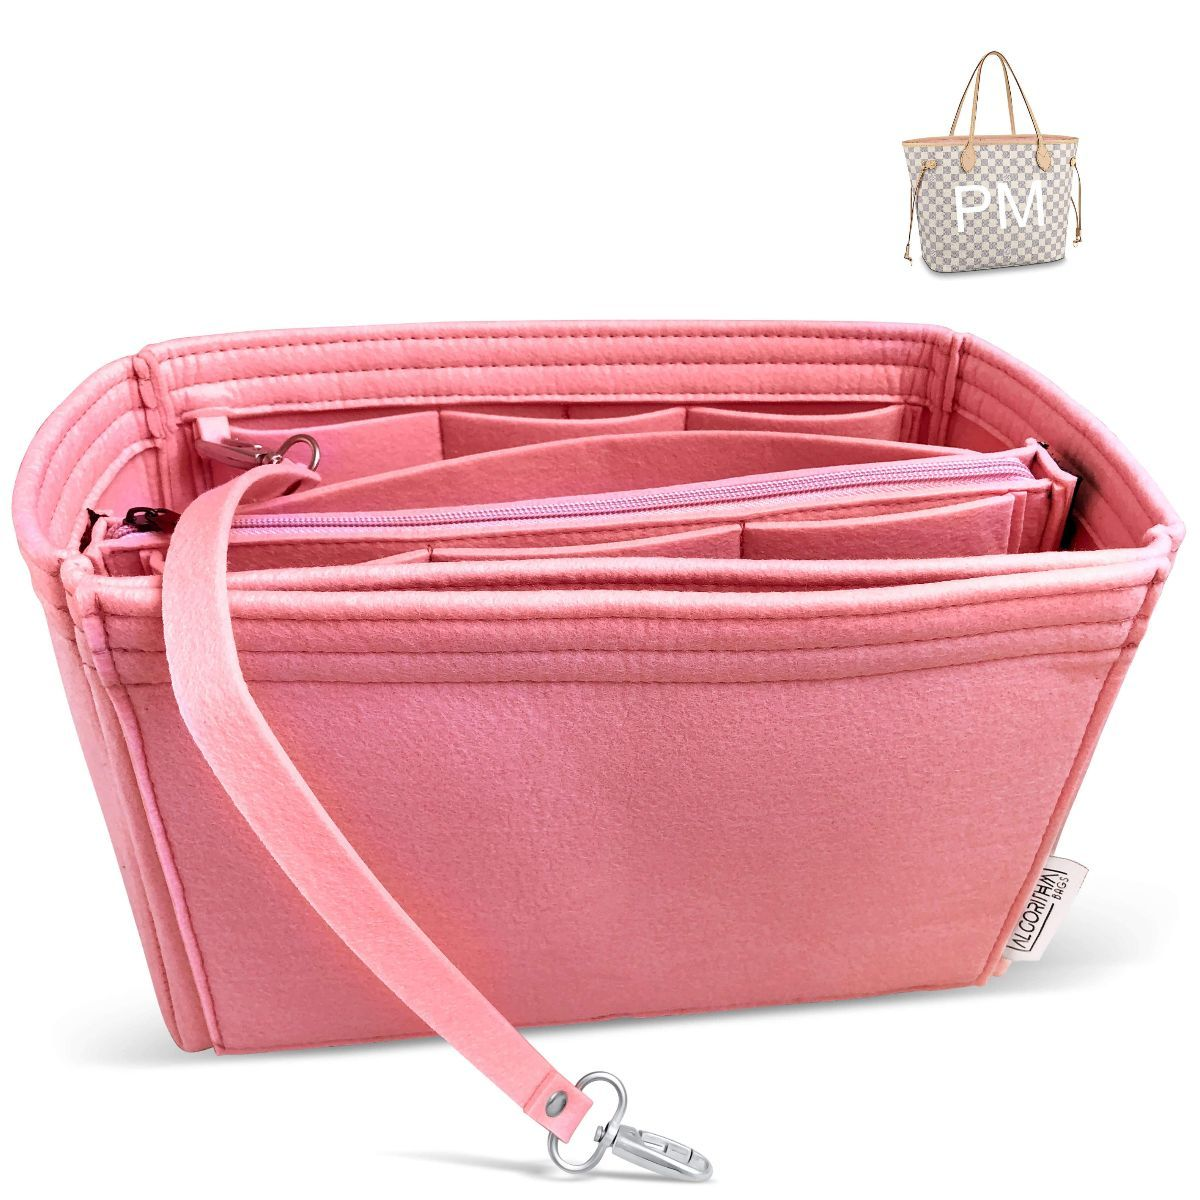 Neverfull PM Organizer Rose